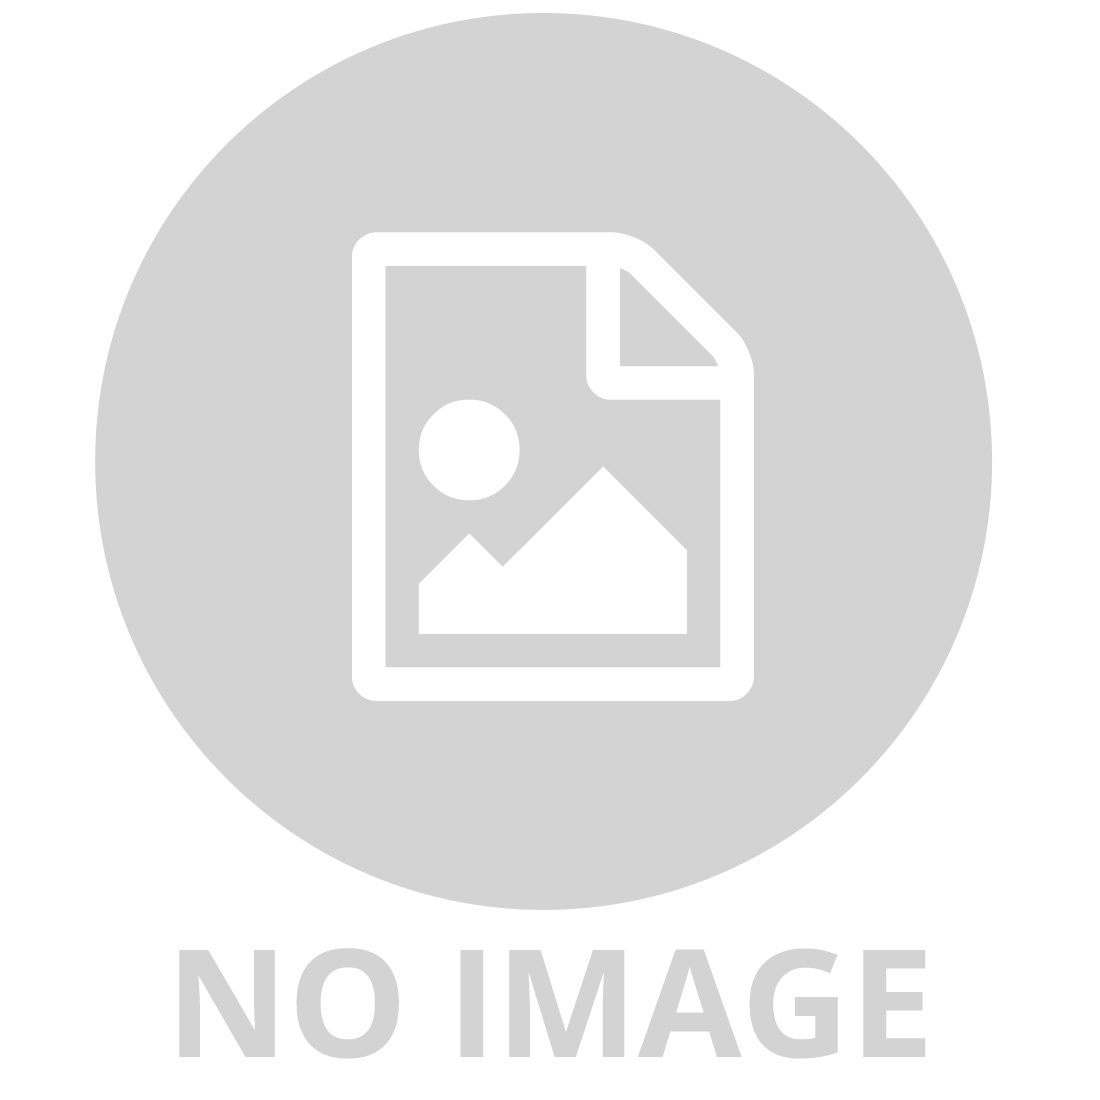 Airbus 225 and 250 Round LED Covers - group